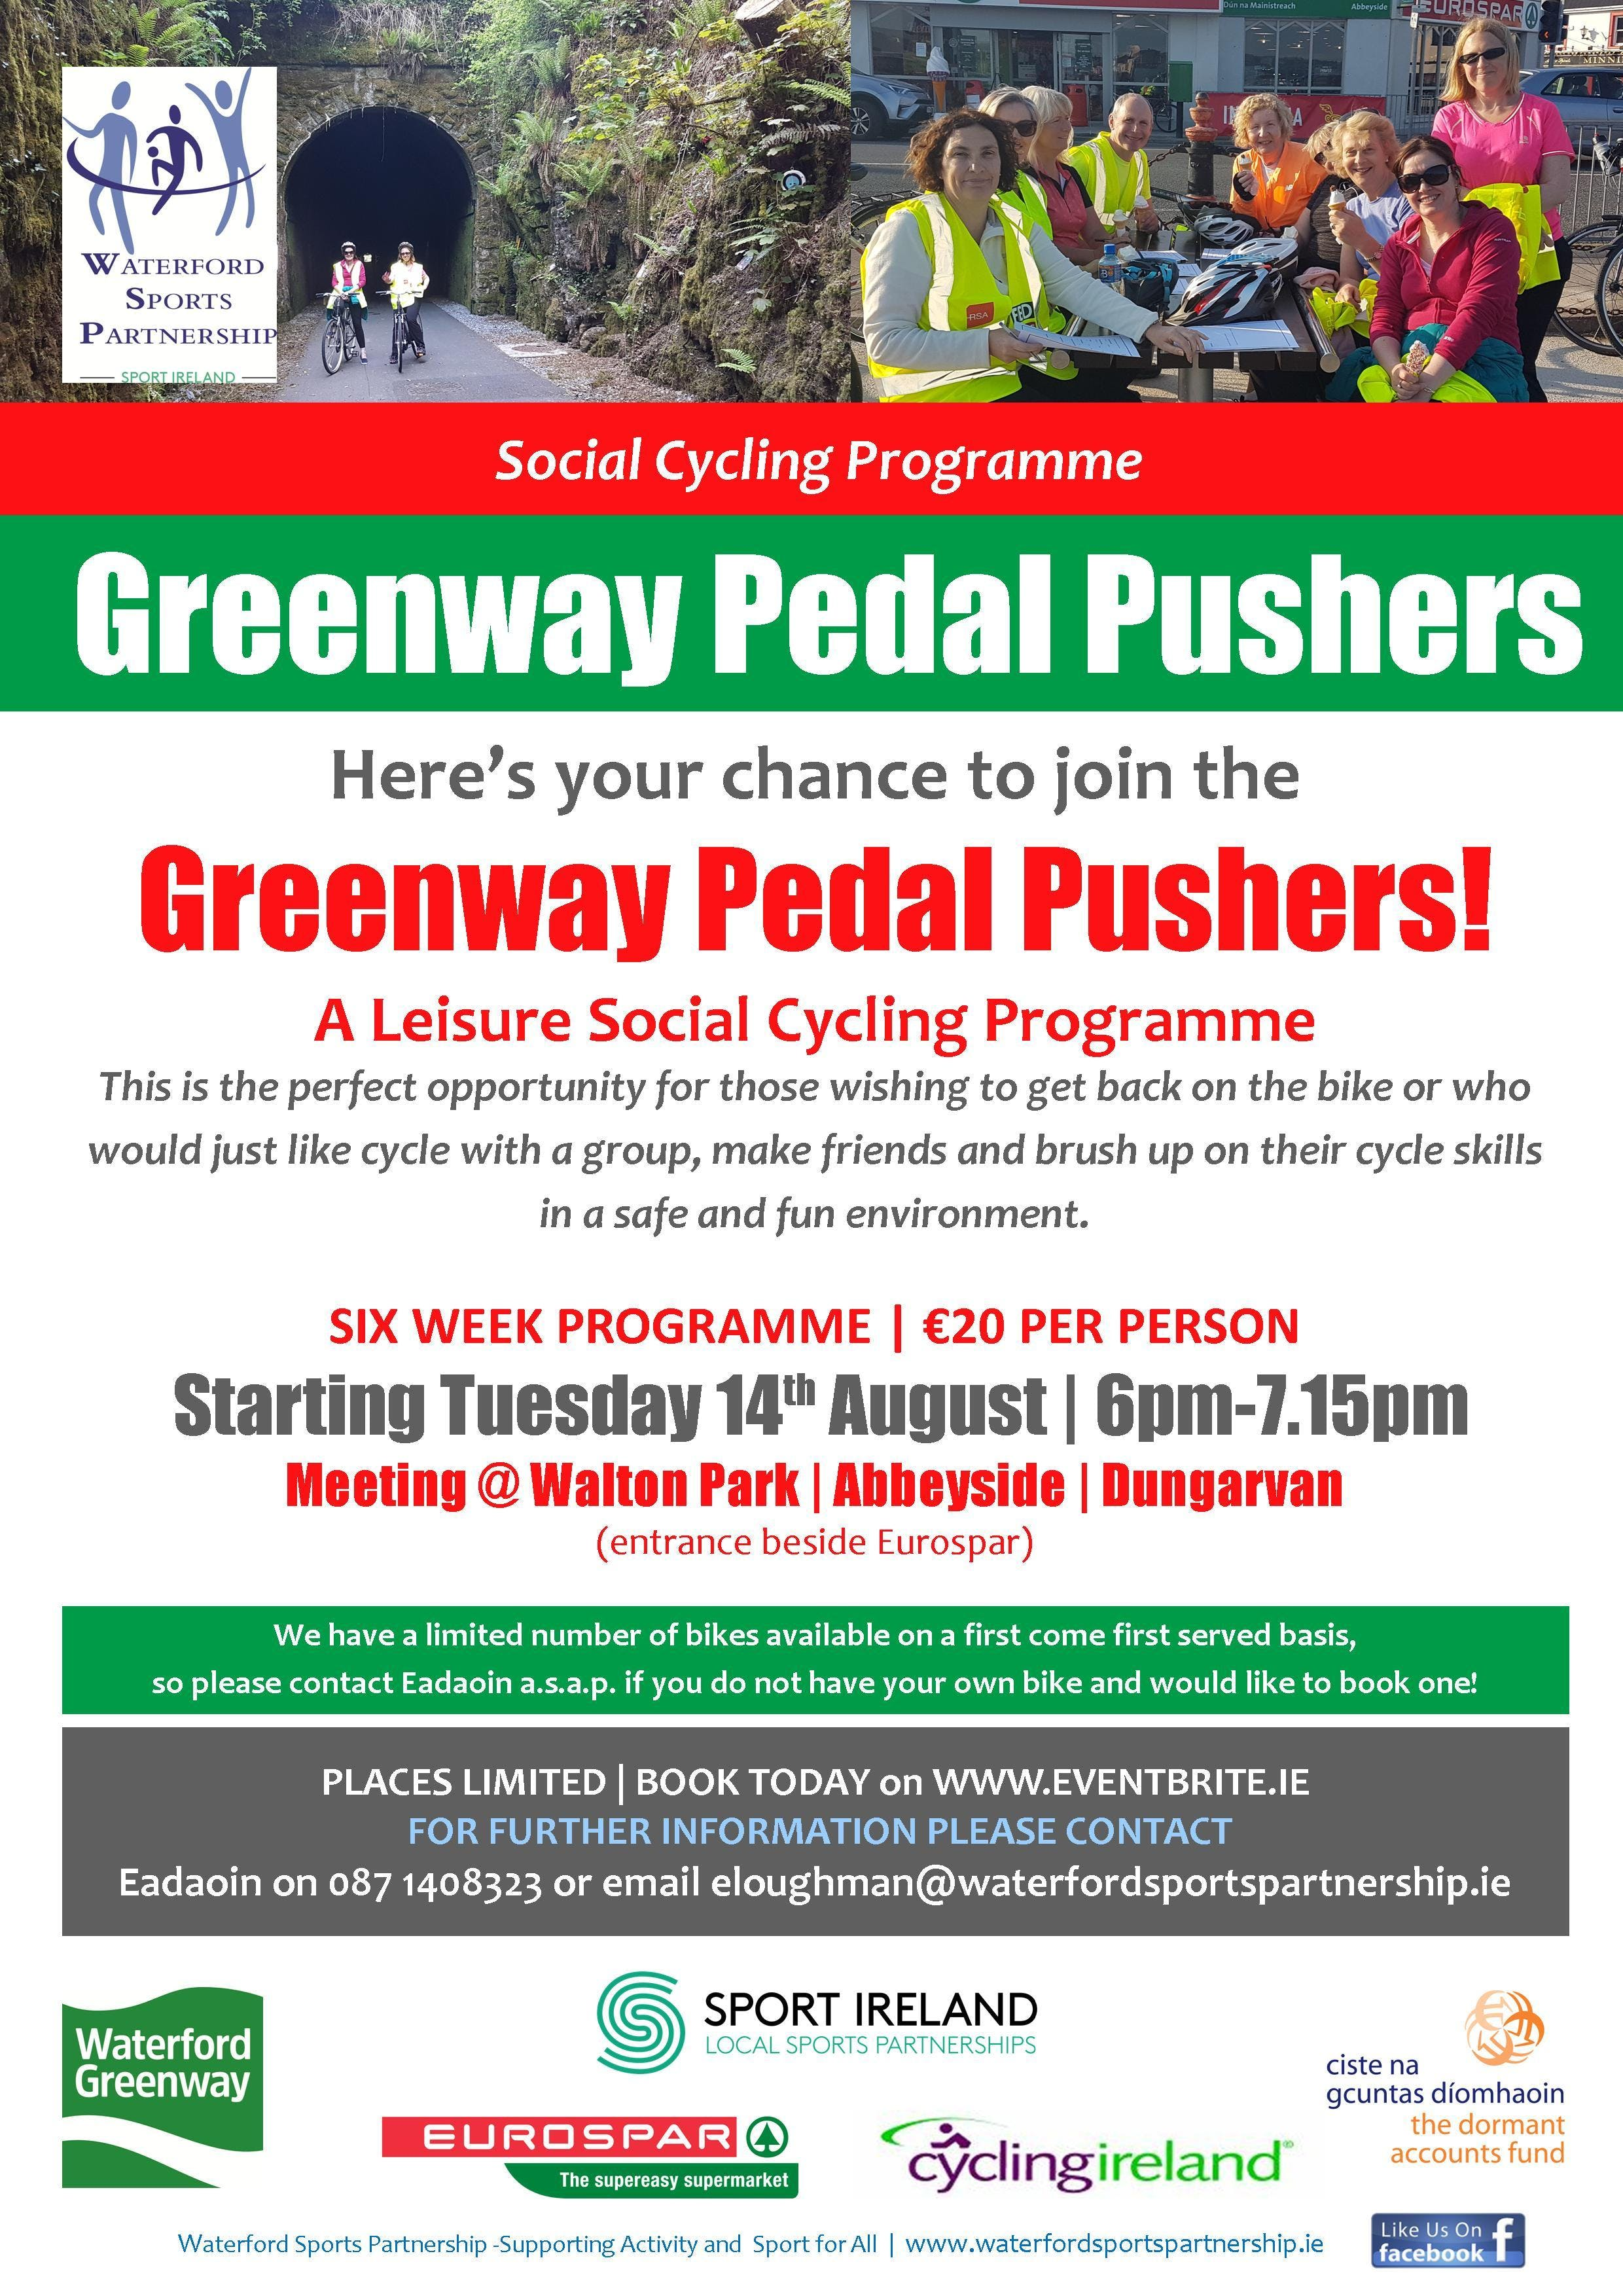 Greenway Pedal Pushers